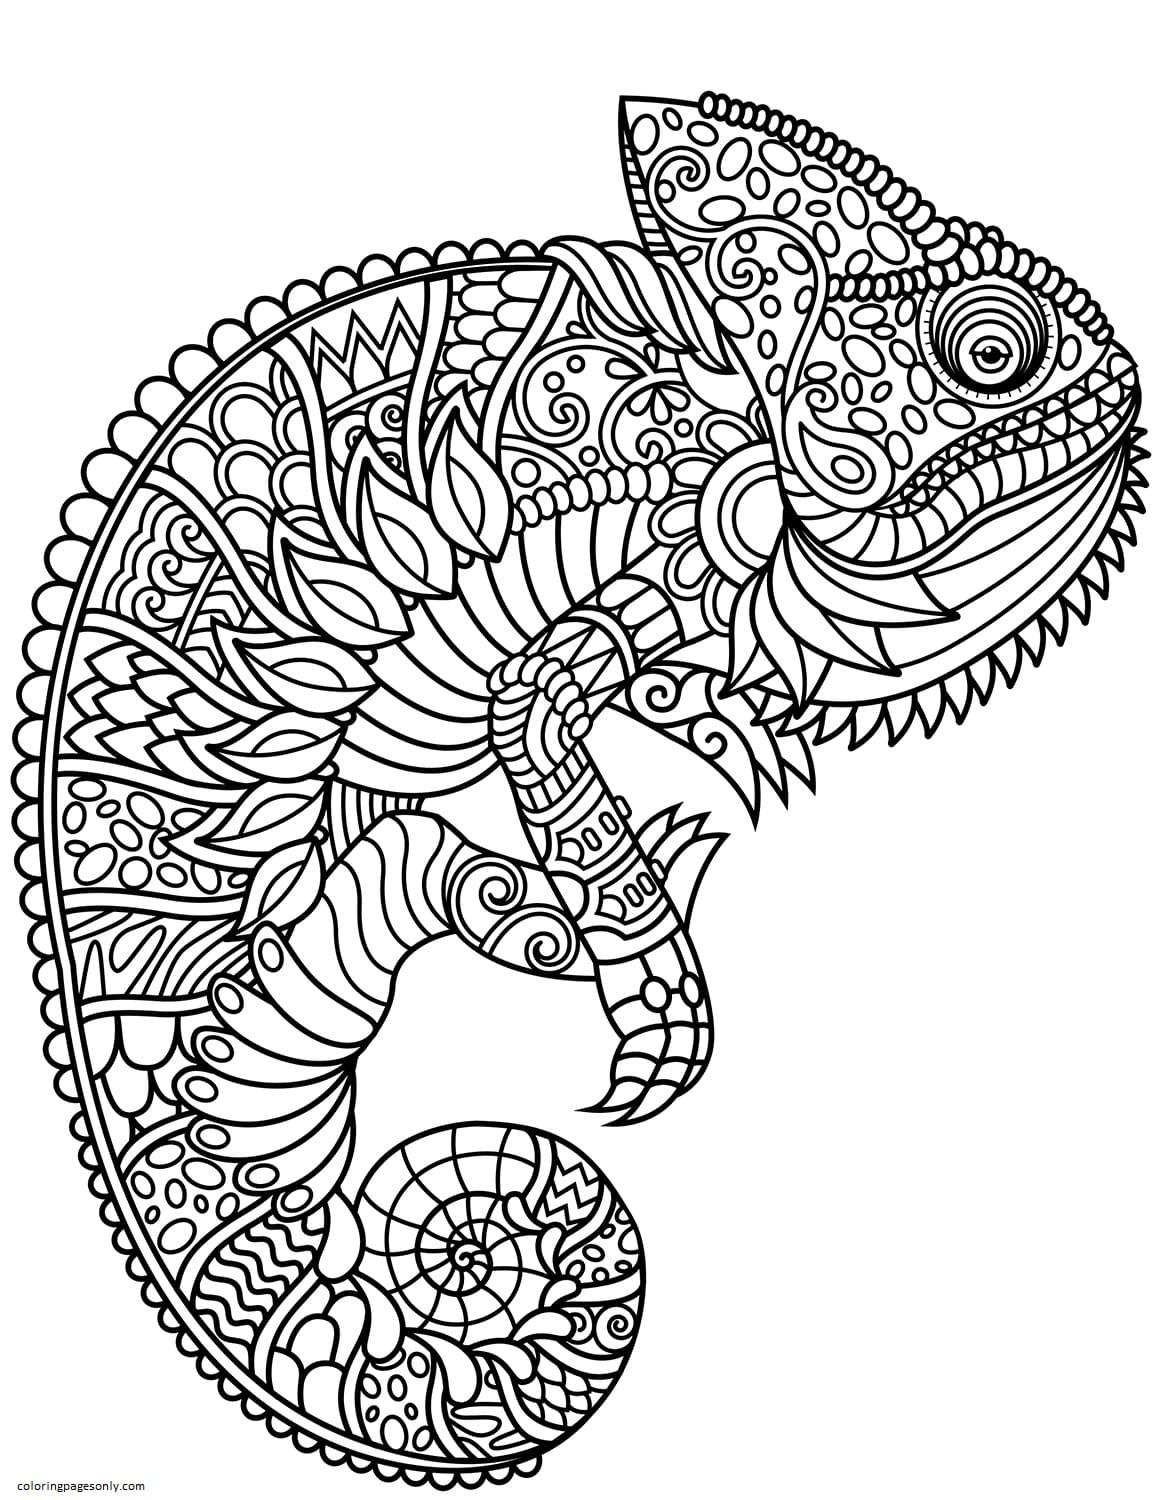 Chameleon Zentangle Coloring Page